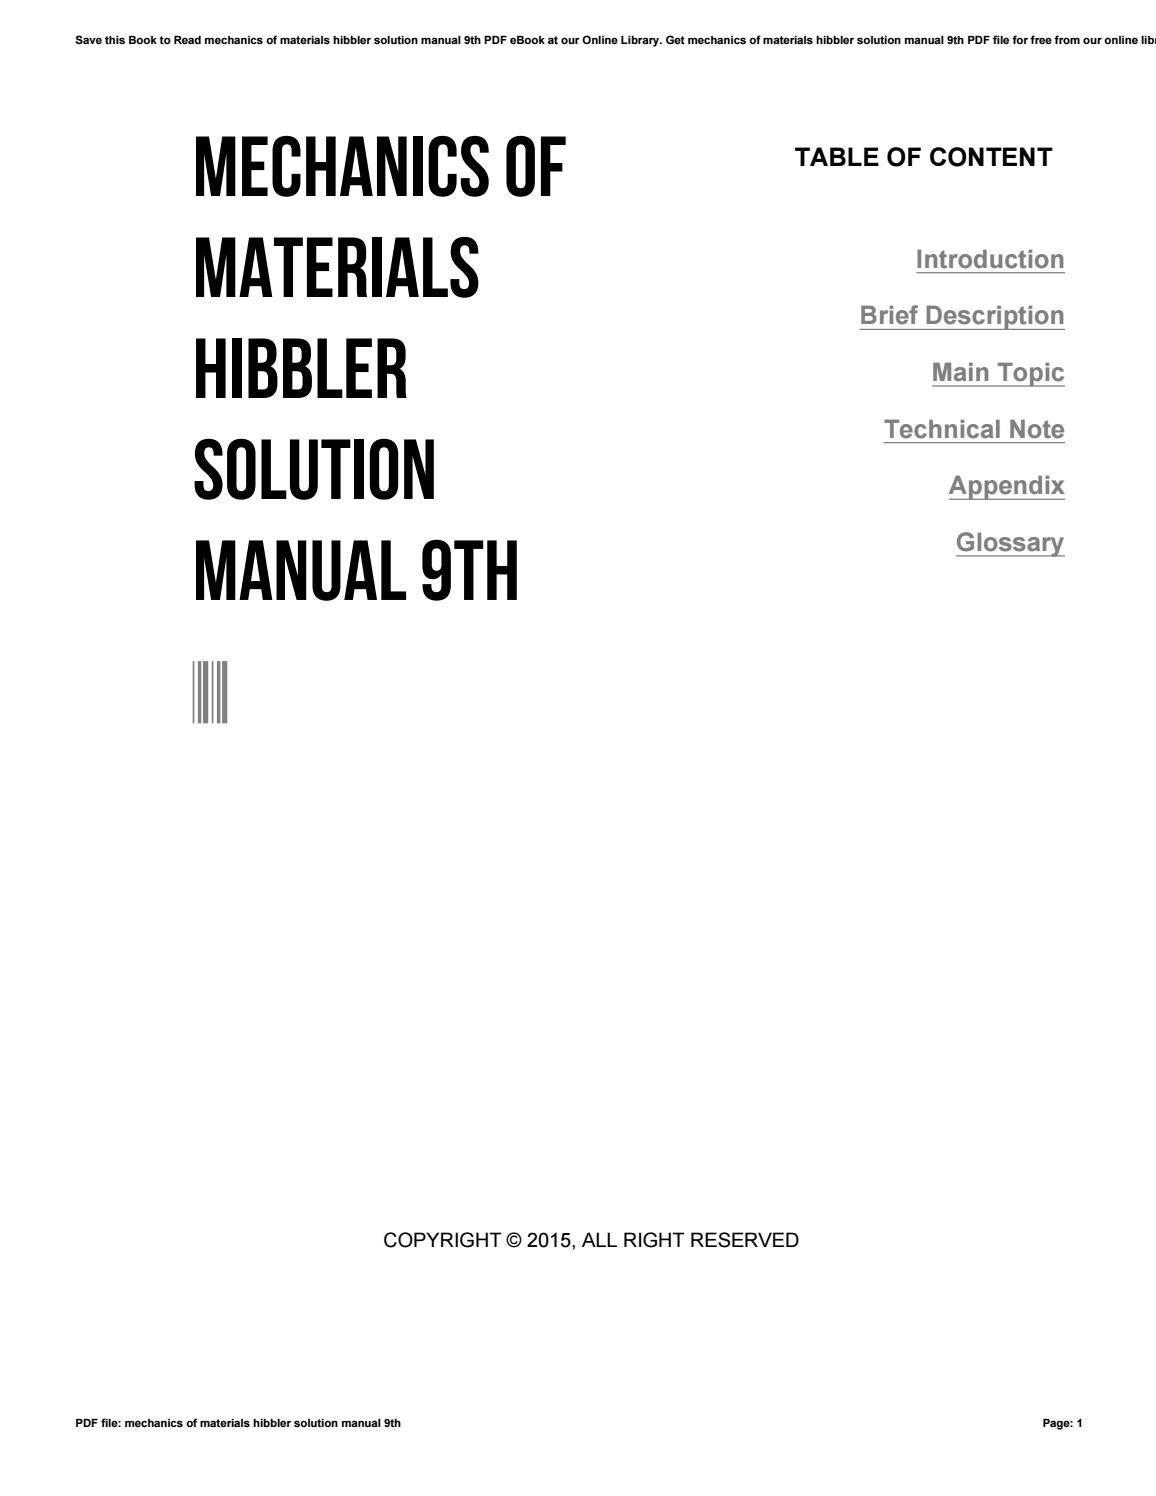 Mechanics of materials hibbler solution manual 9th by